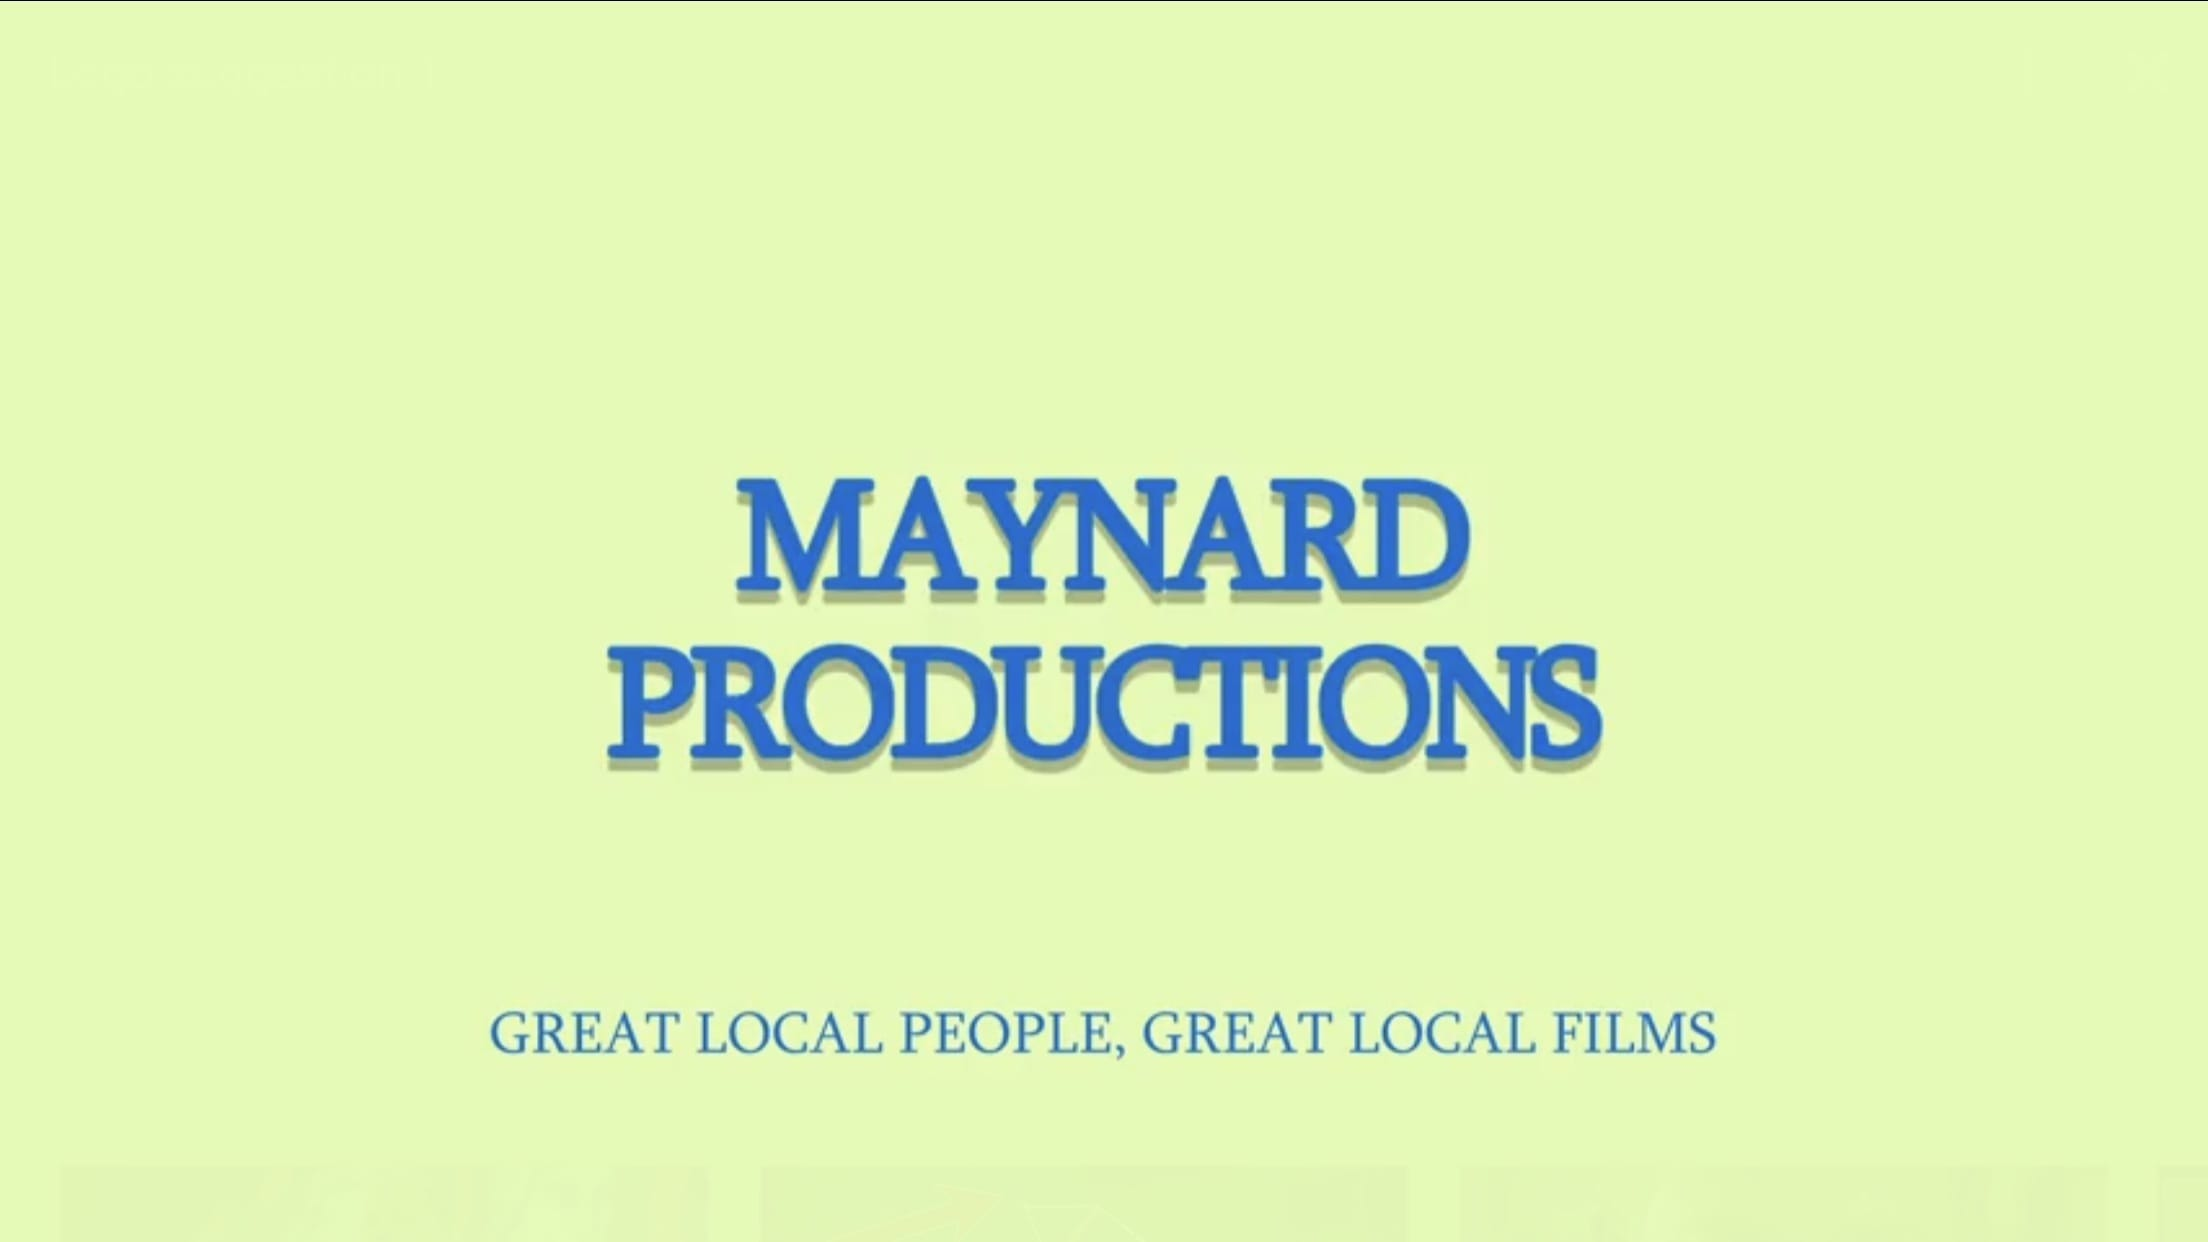 Maynard Productions